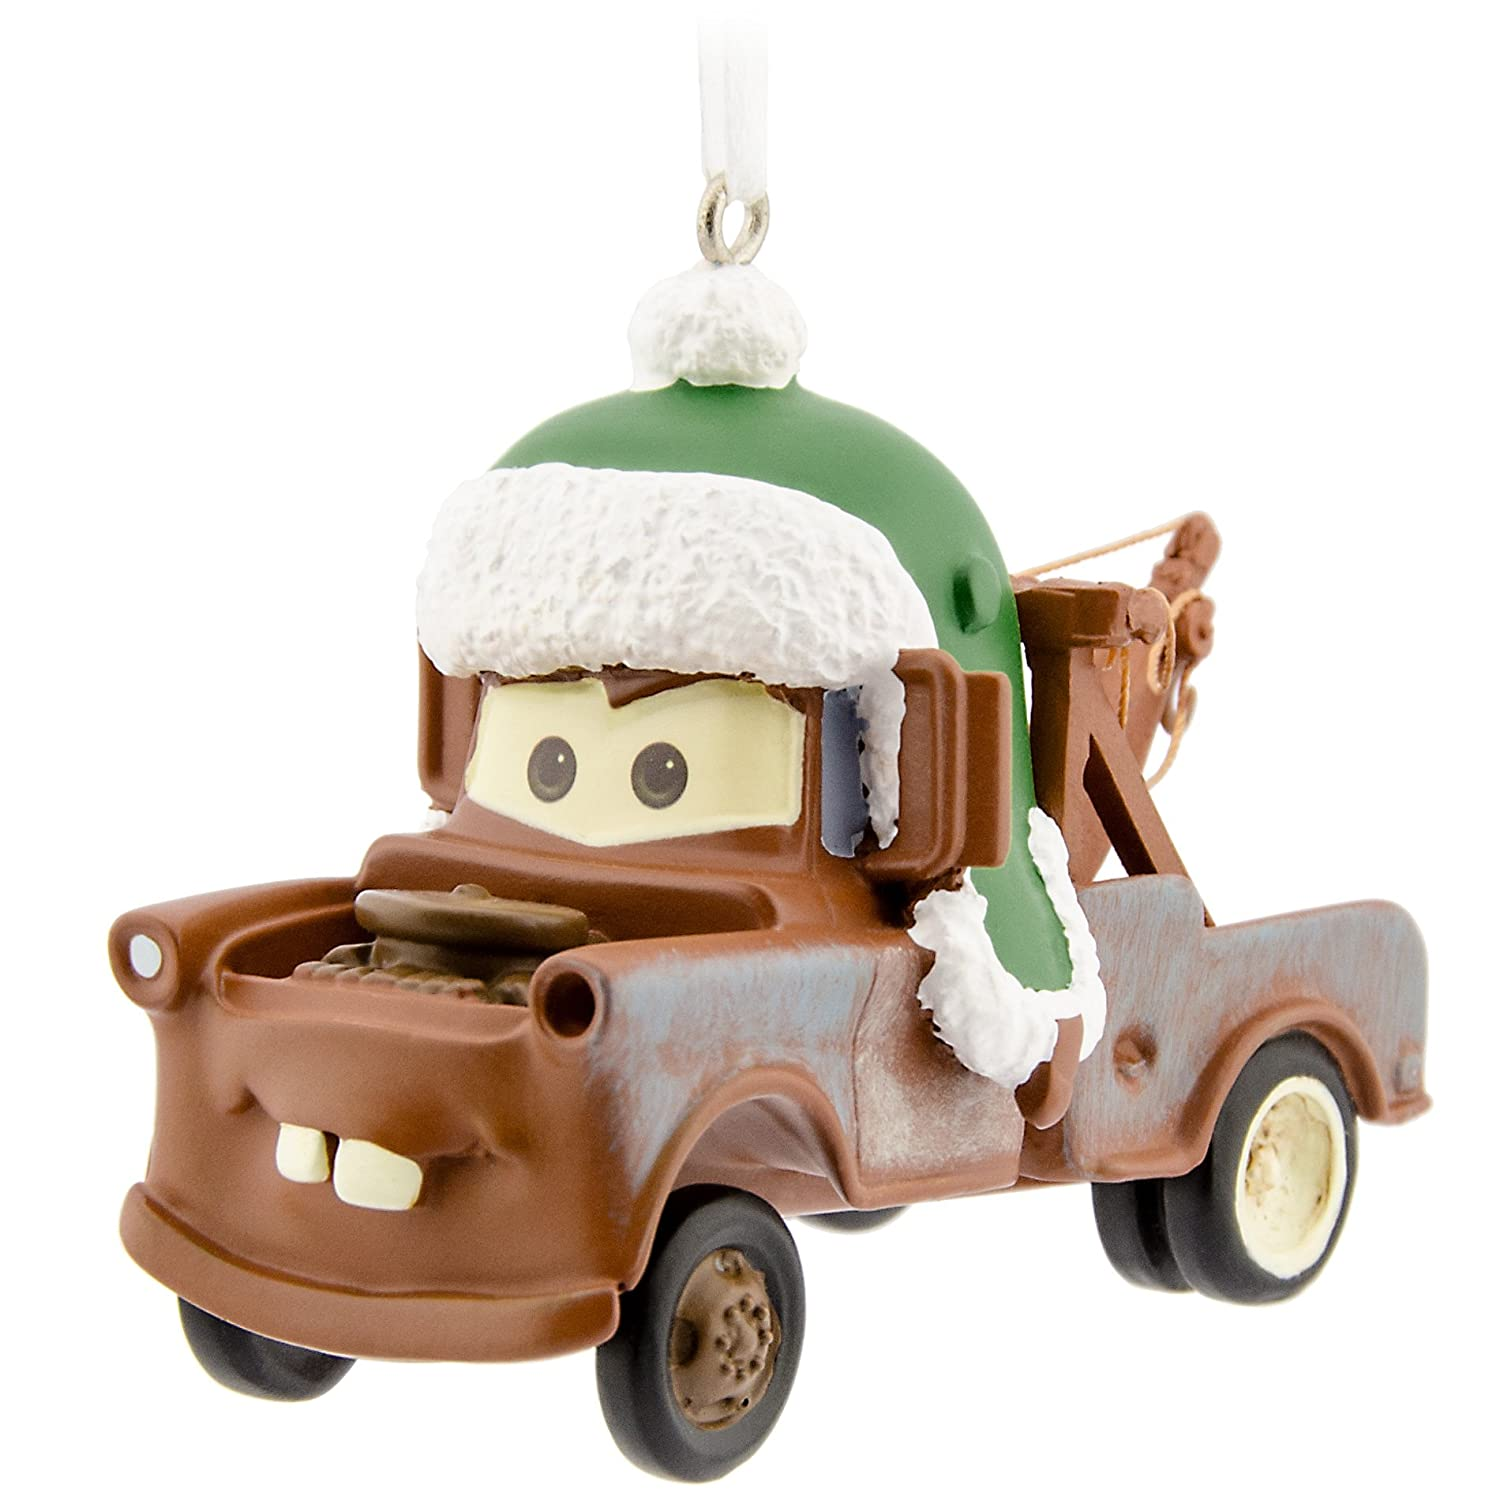 Amazon.com: Hallmark Disney/Pixar Cars Tow Mater Christmas Ornament ...